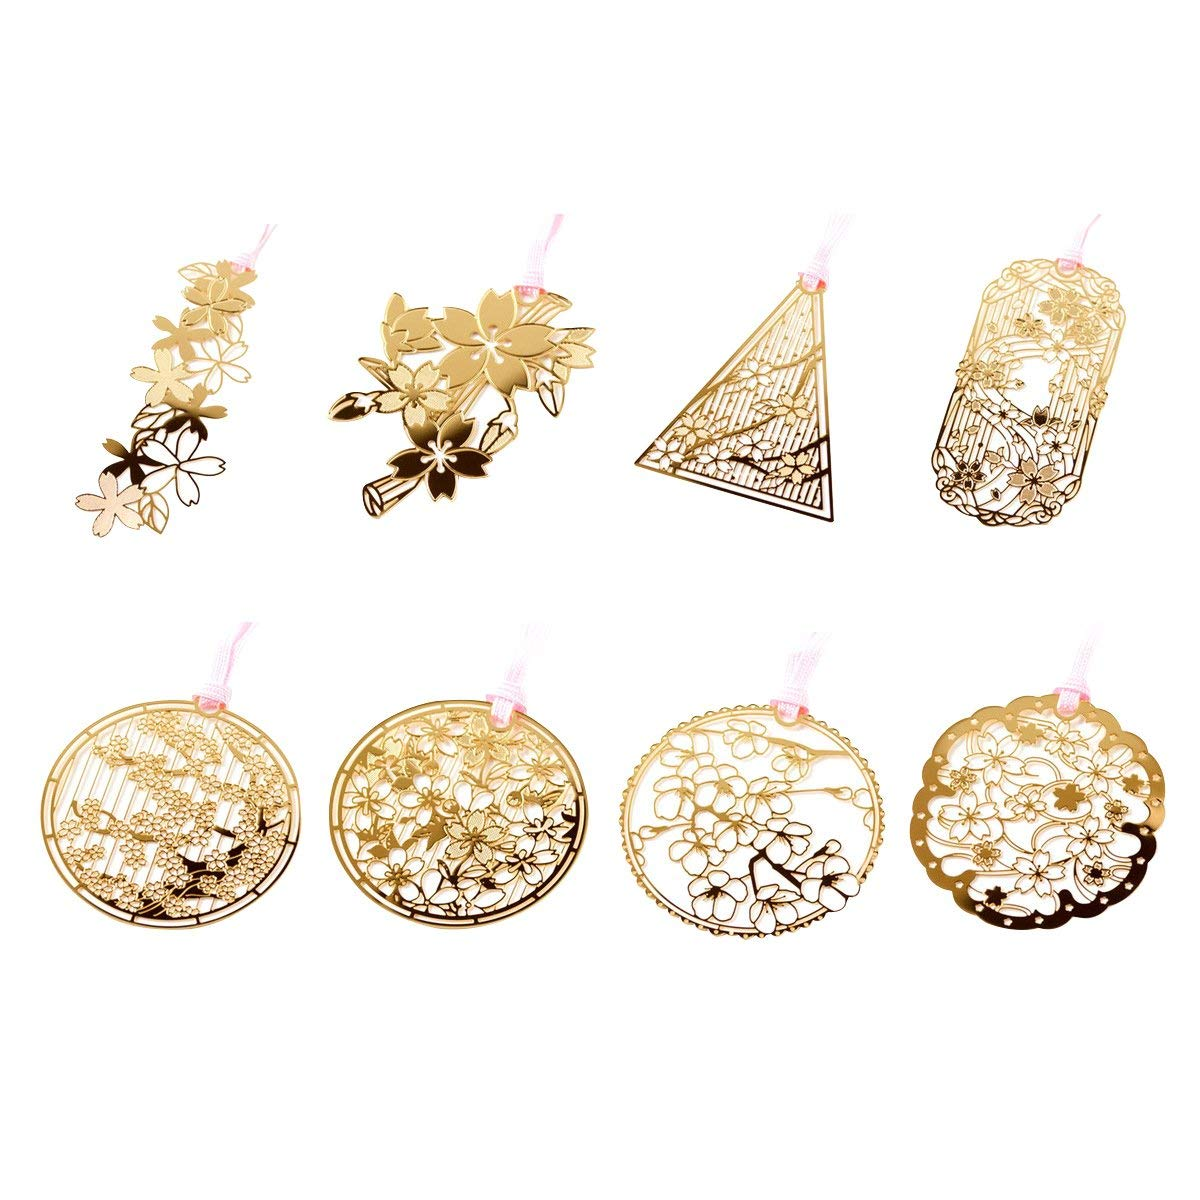 8pcs Mini Chinoiserie Brass Bookmark Hollow Paper Clip Bookmark Book Creative Kids Gift School Stationery